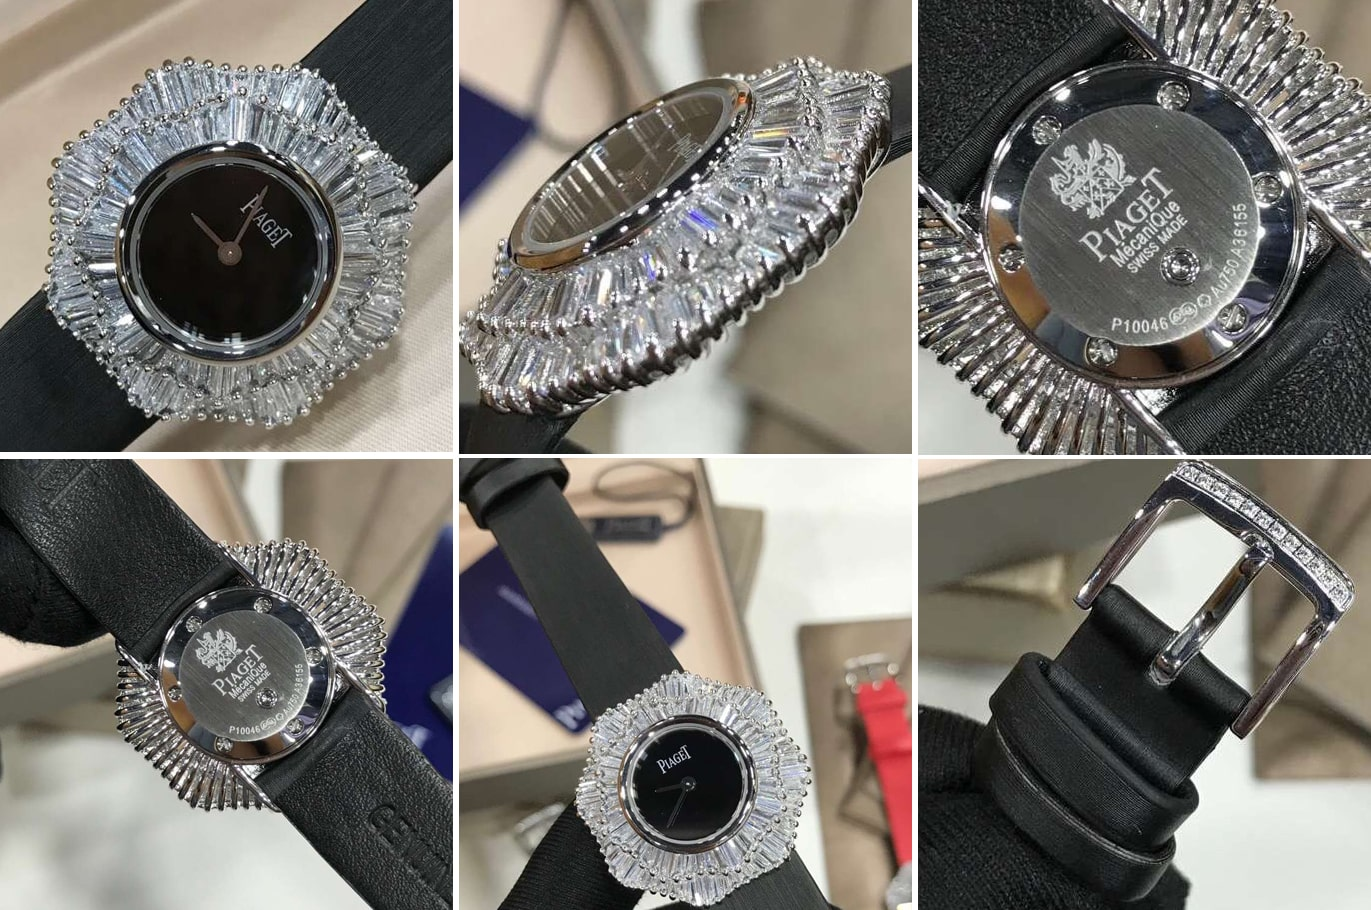 Hinh anh thuc te dong ho Piaget Limelight ms 416700